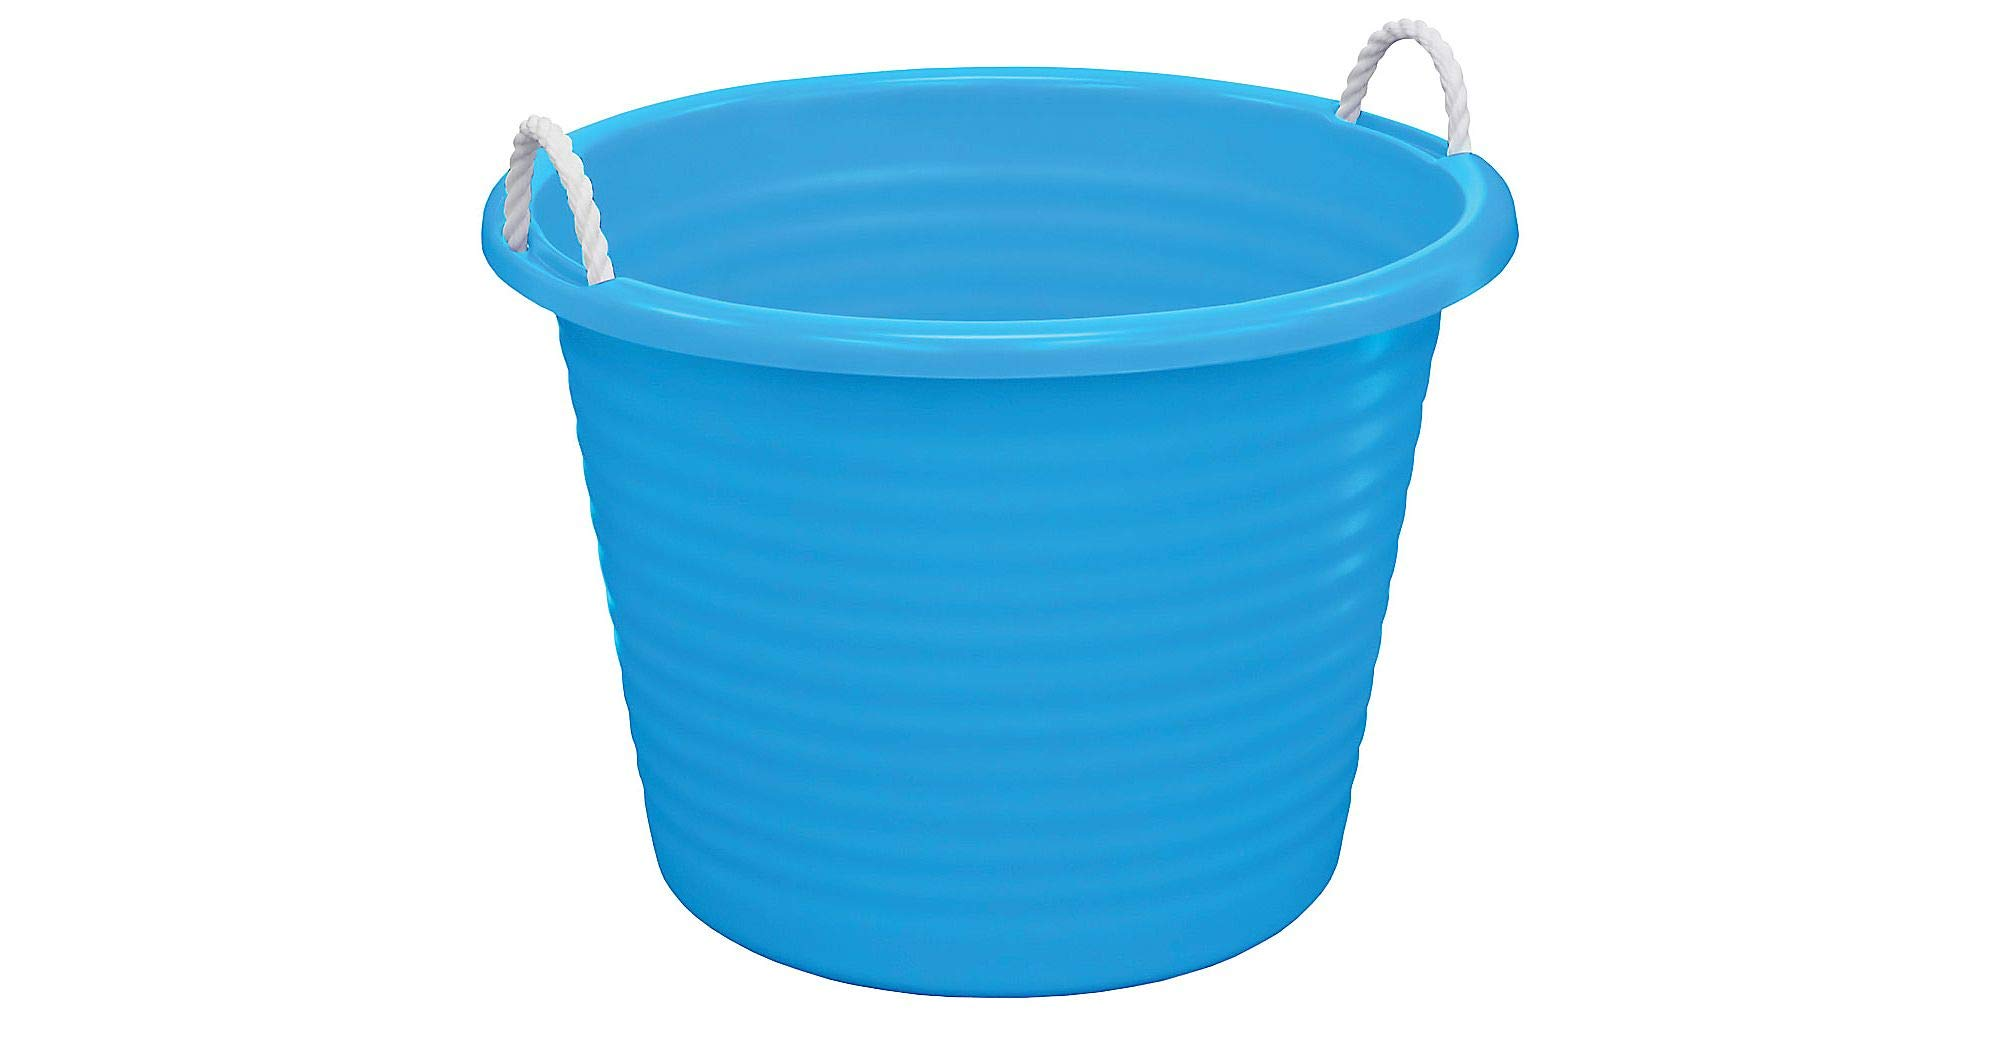 United Solutions Blue Plastic Tub with Rope Handles, 17gal, 22'' dia. x 16'' H